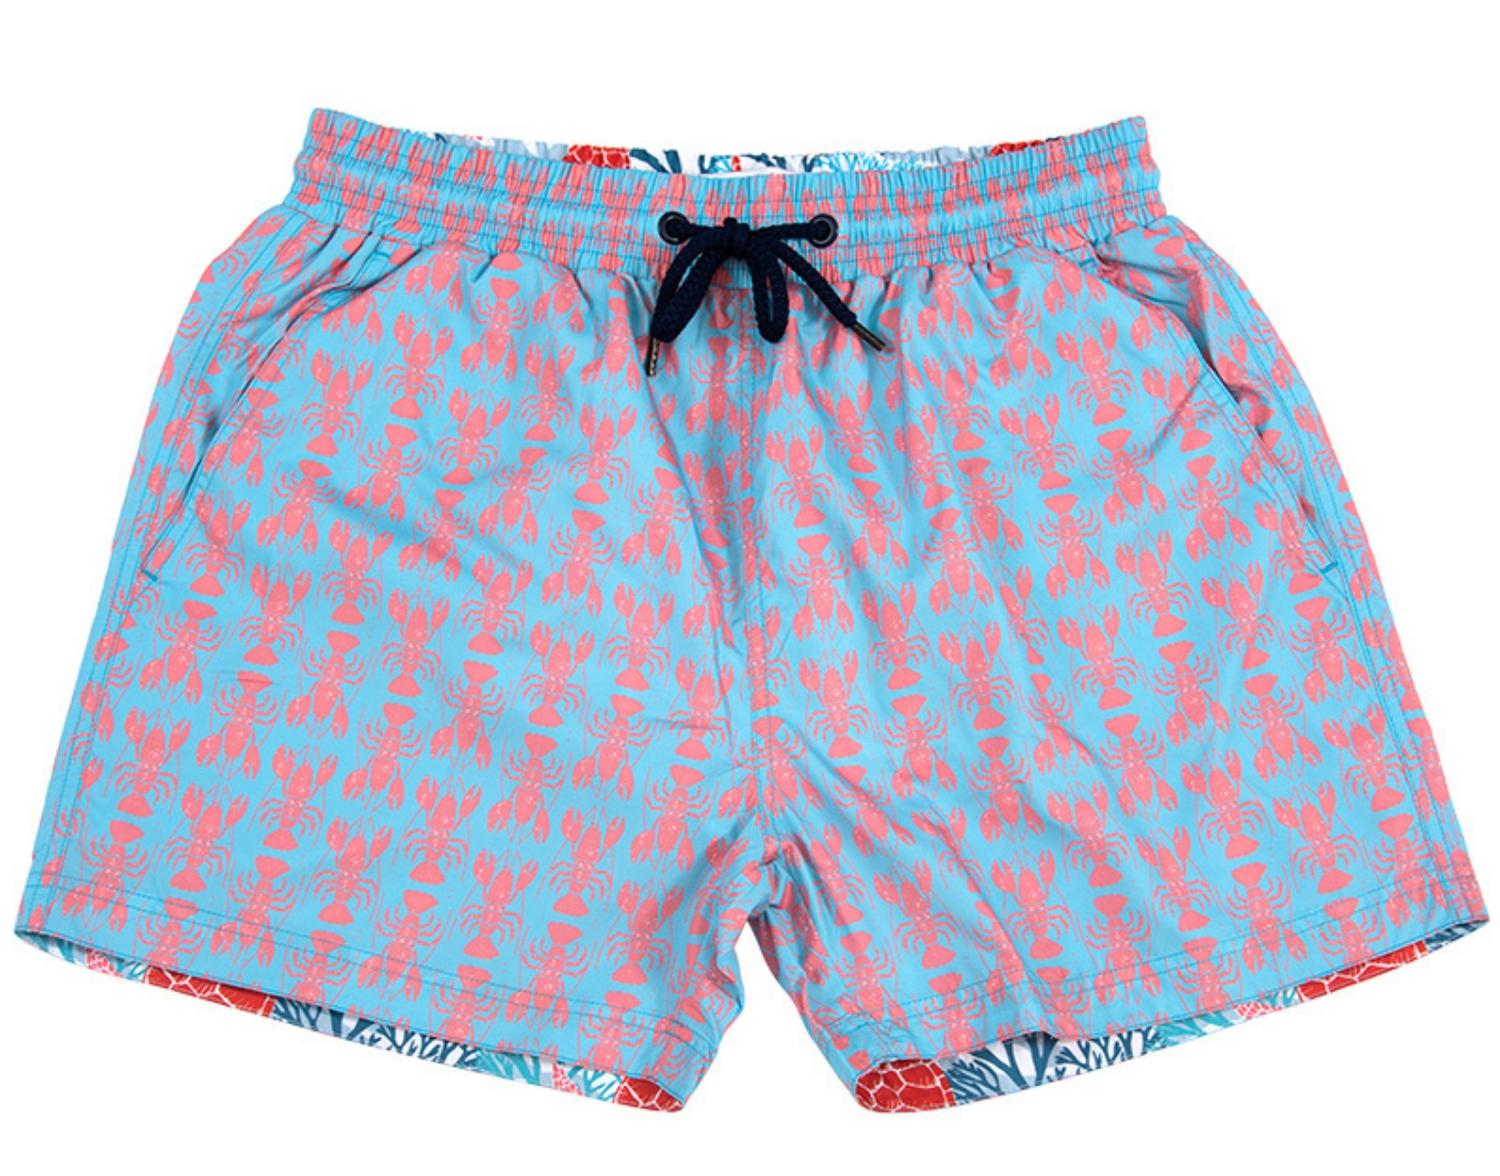 The Rocks Push makes men's swim shorts from abandoned fishing nets reclaimed from the ocean